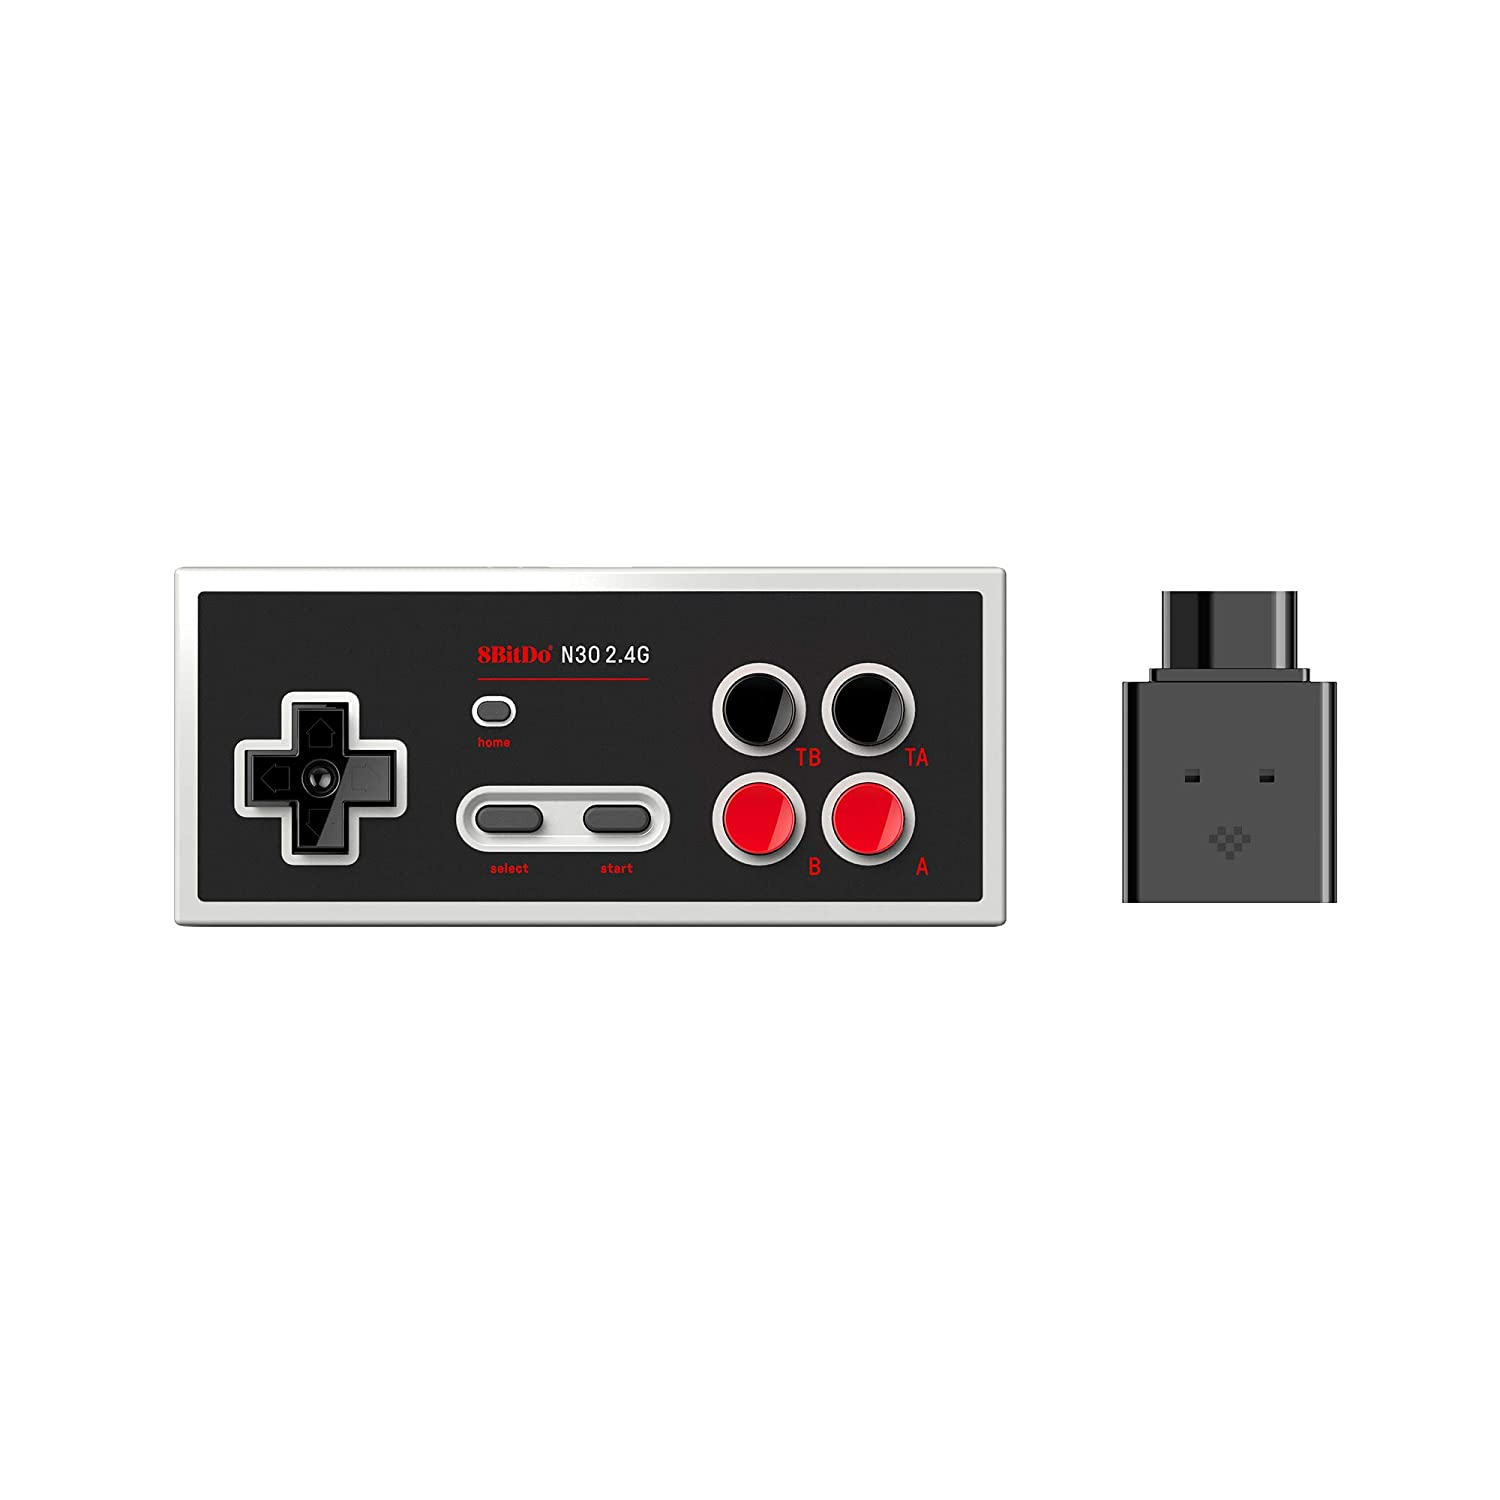 Analogue NT Mini, la NES dans sa plus belle expression! - Page 3 61iBq5p-fLL._SL1500_